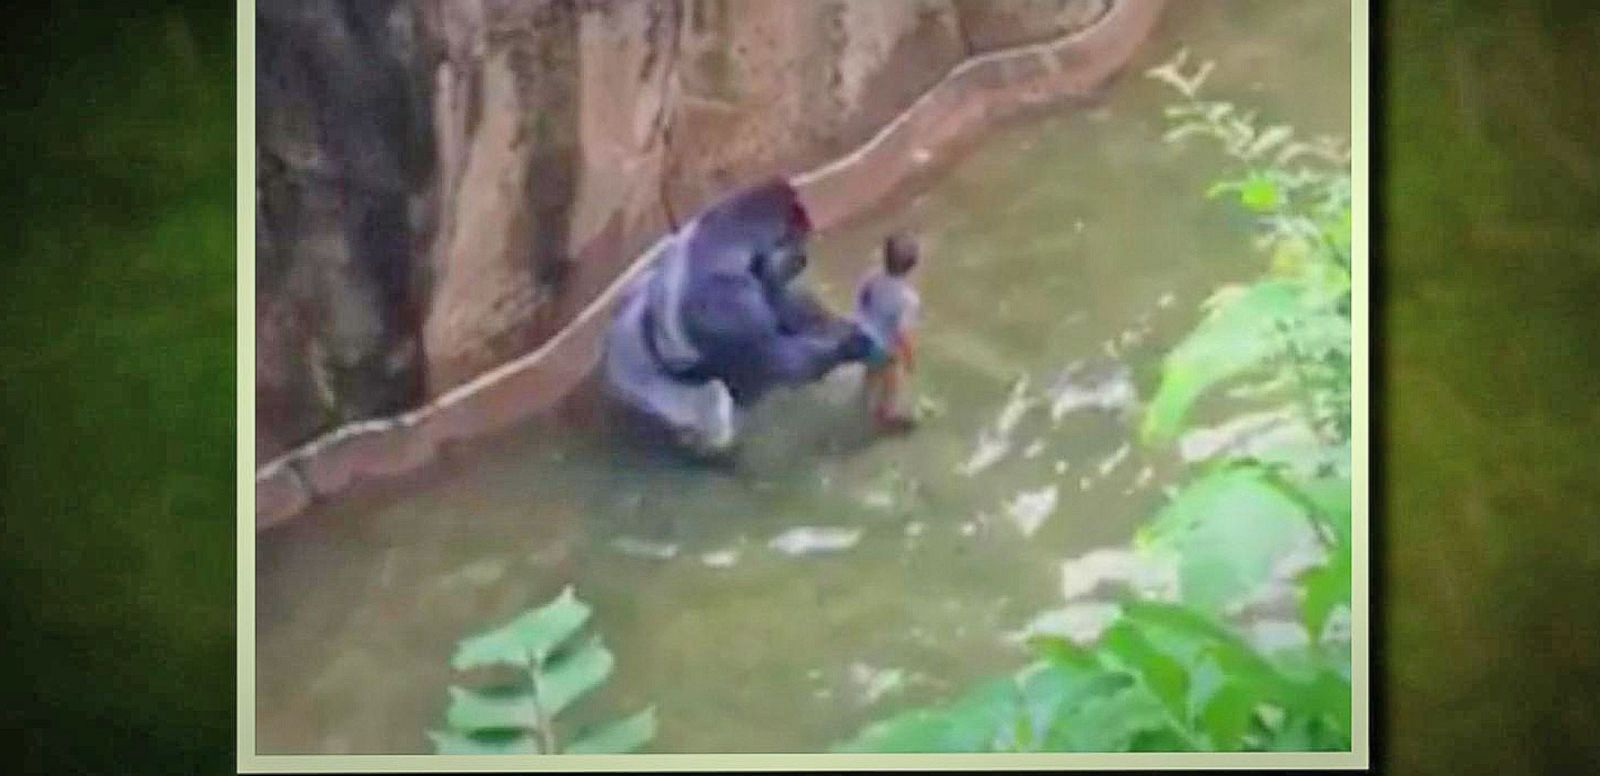 VIDEO: Child Tumbles Into Gorilla Enclosure at Cincinnati Zoo